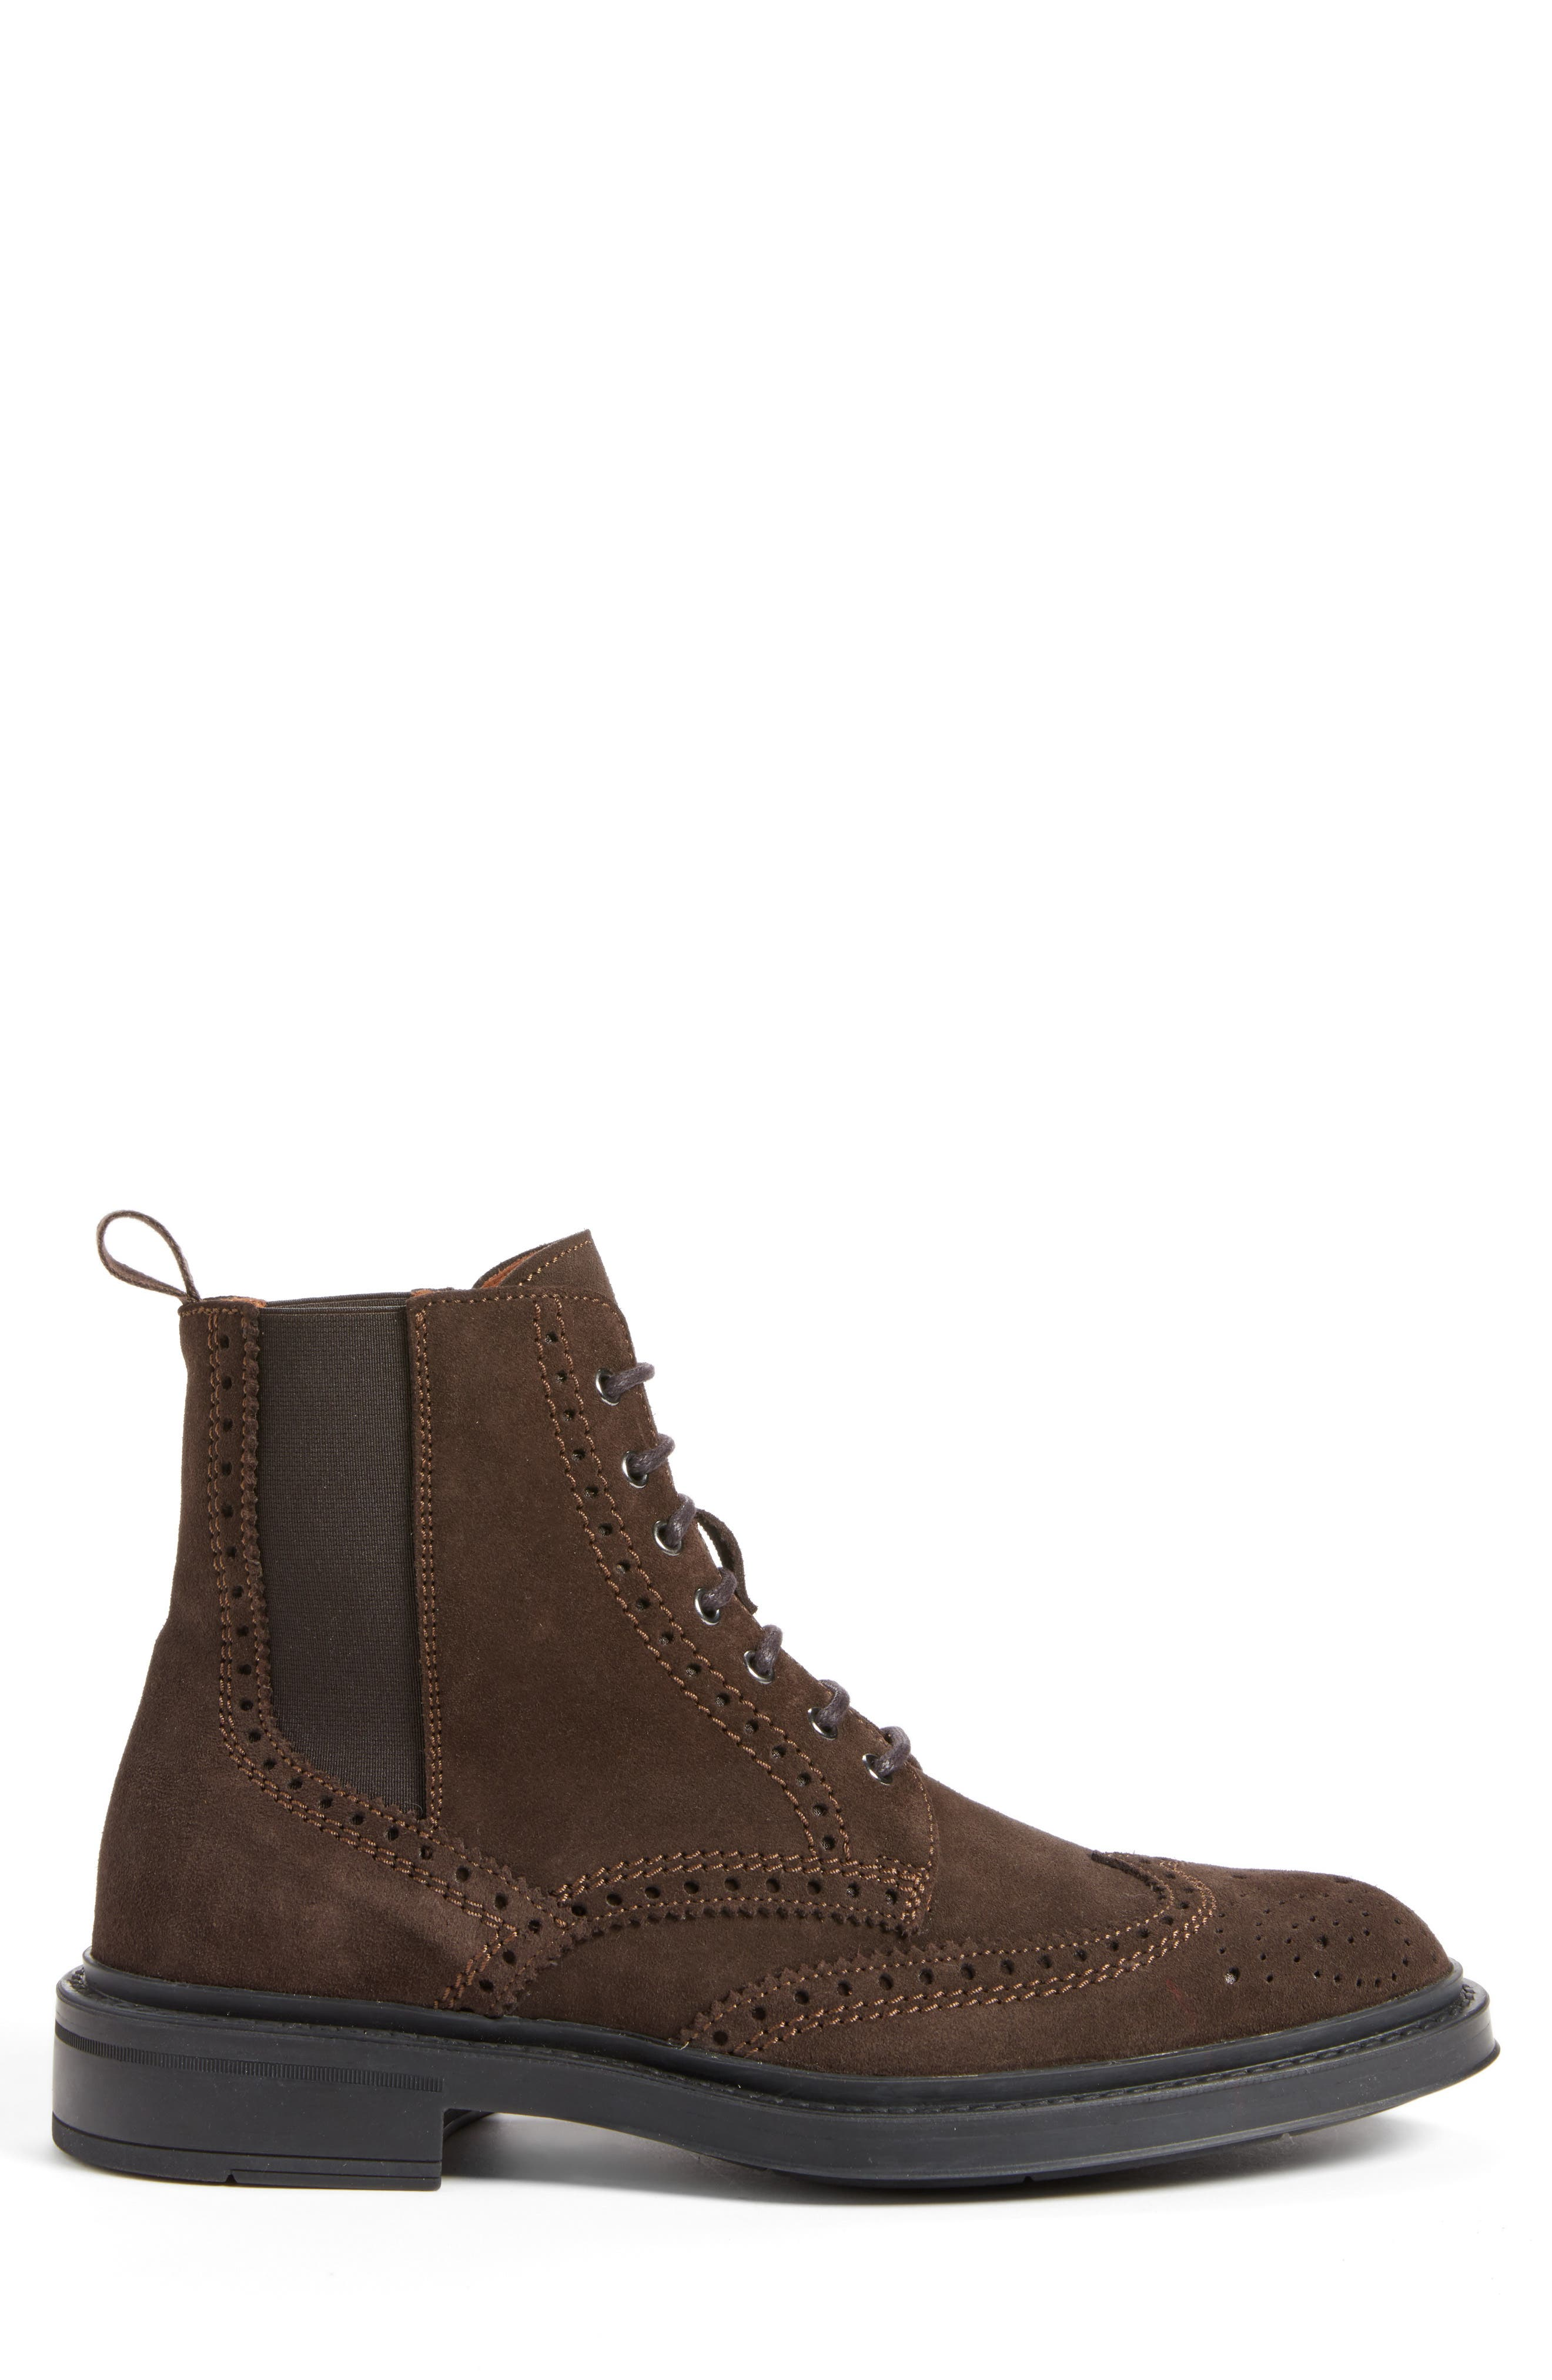 Alternate Image 3  - Aquatalia Lawrence Wingtip Boot (Men)